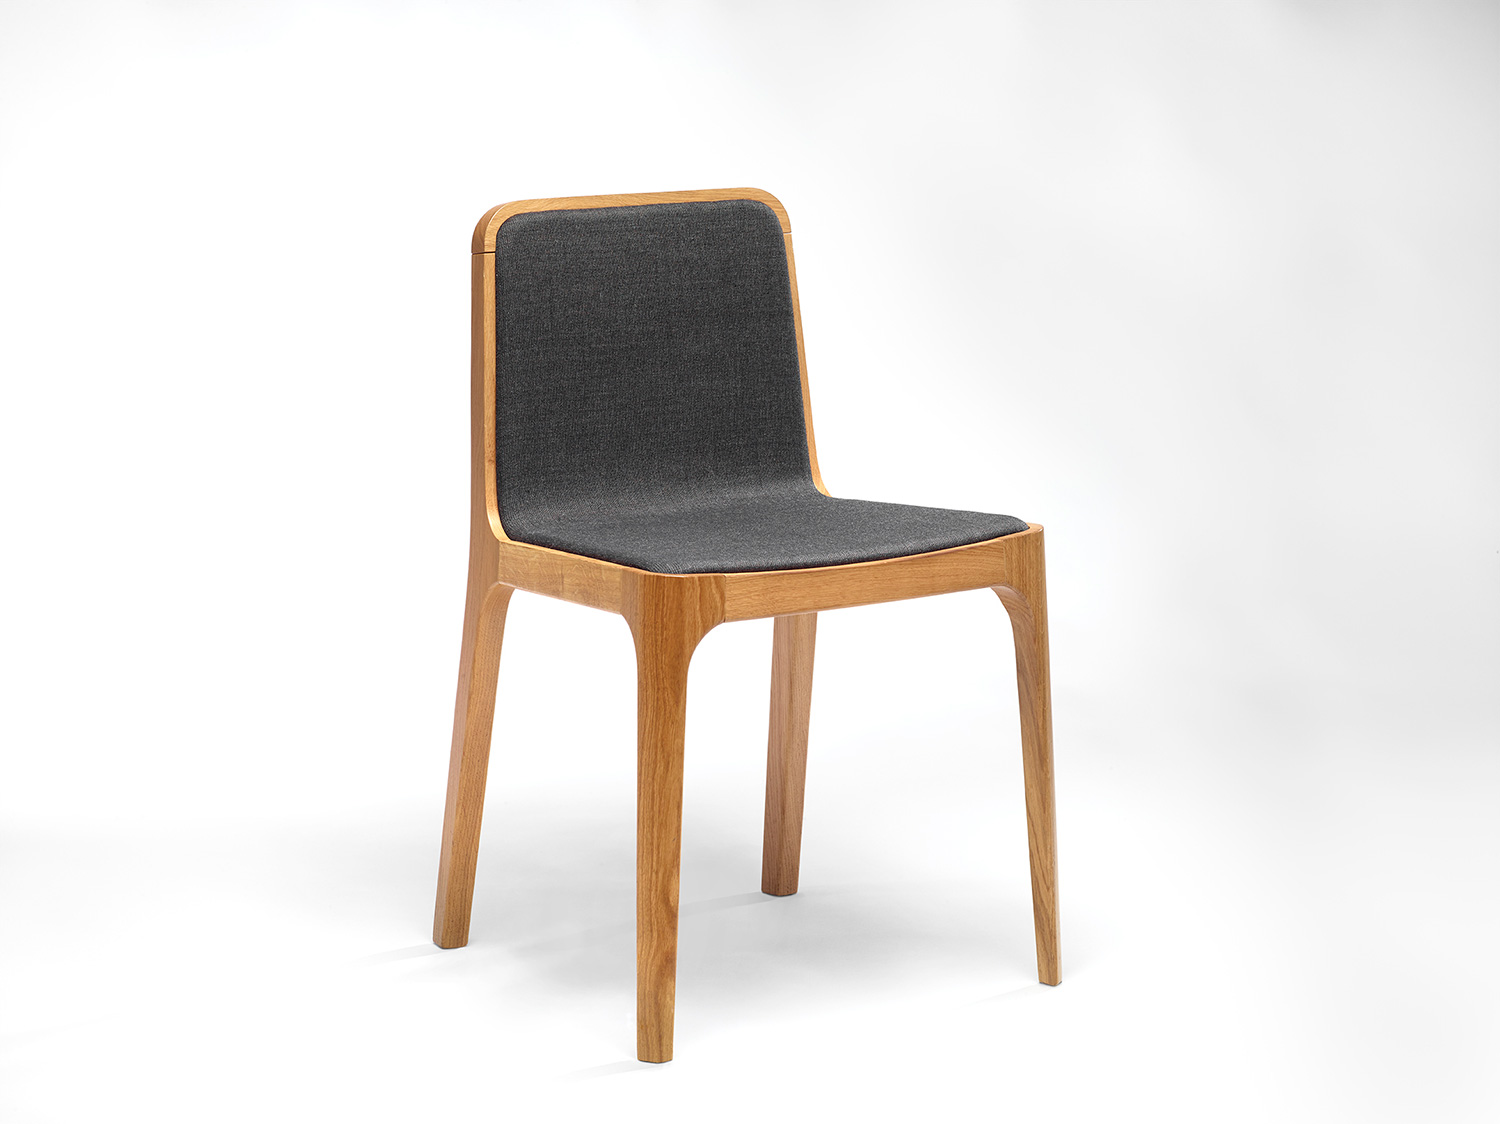 CAST CHAIR